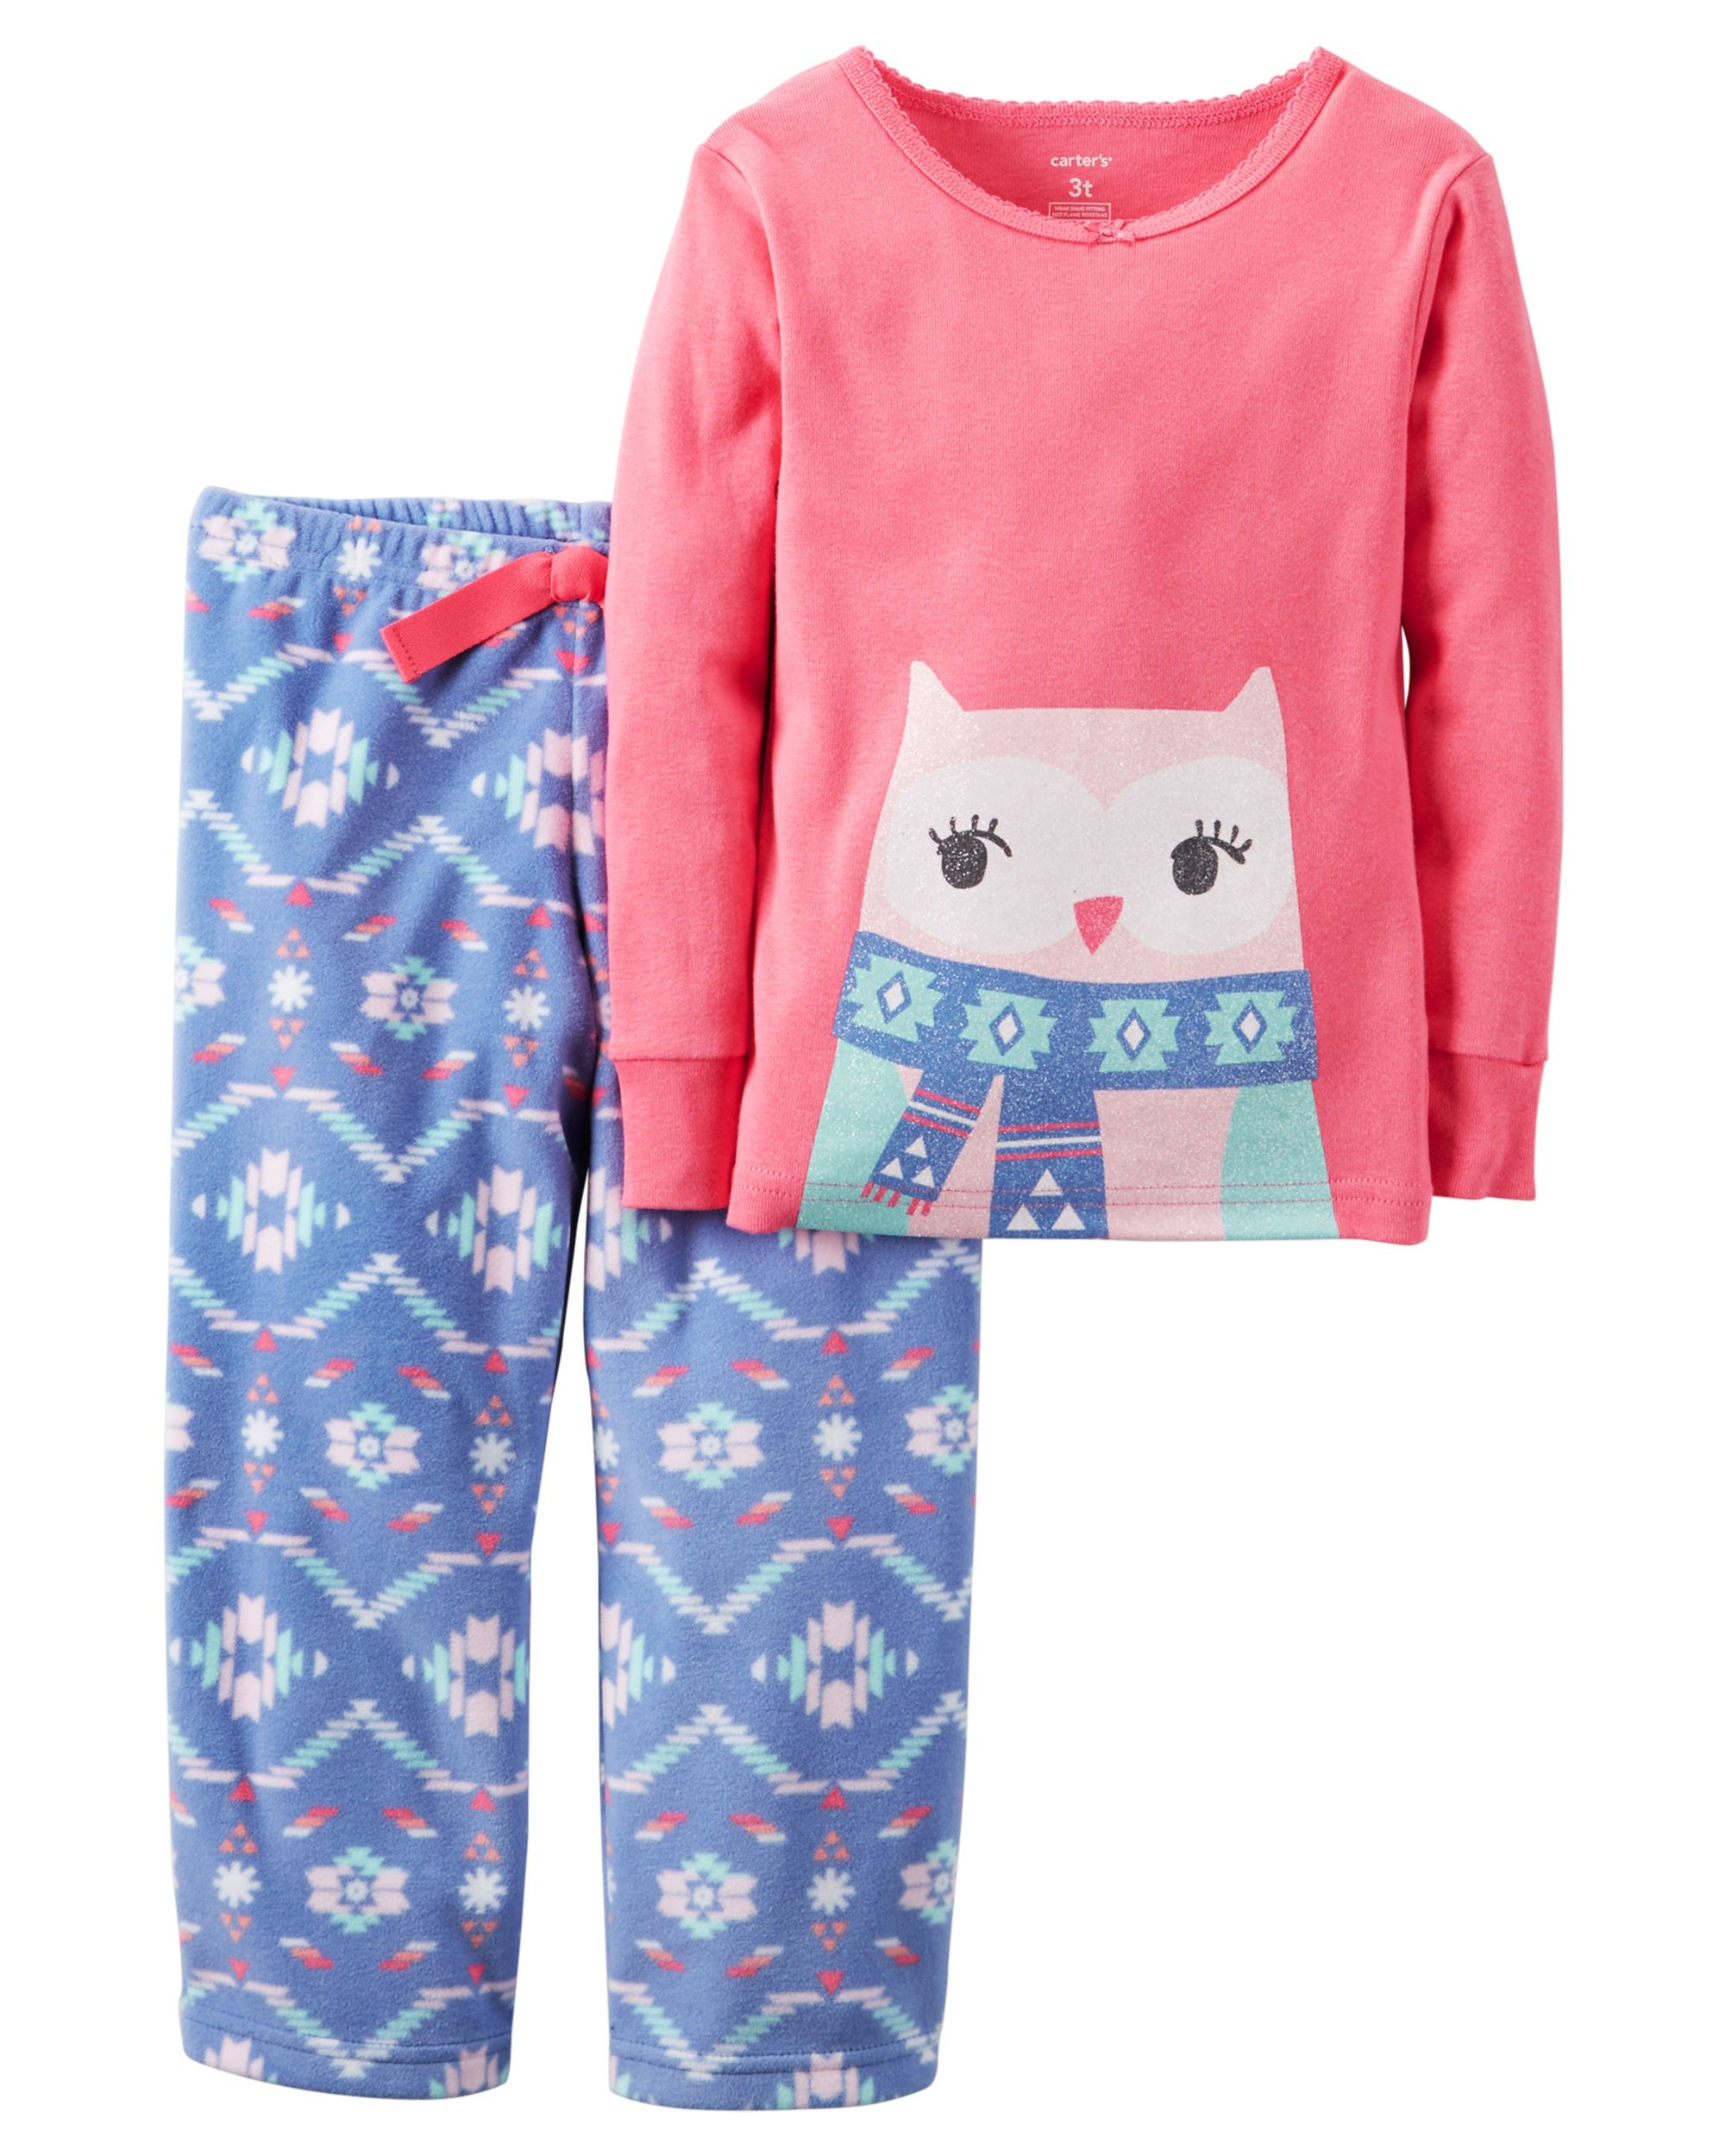 BABY BOY/'S 2-PC FLEECE OUTFIT SET 12M 3-6M SIZES: 0-3M *NWT- CARTER/'S